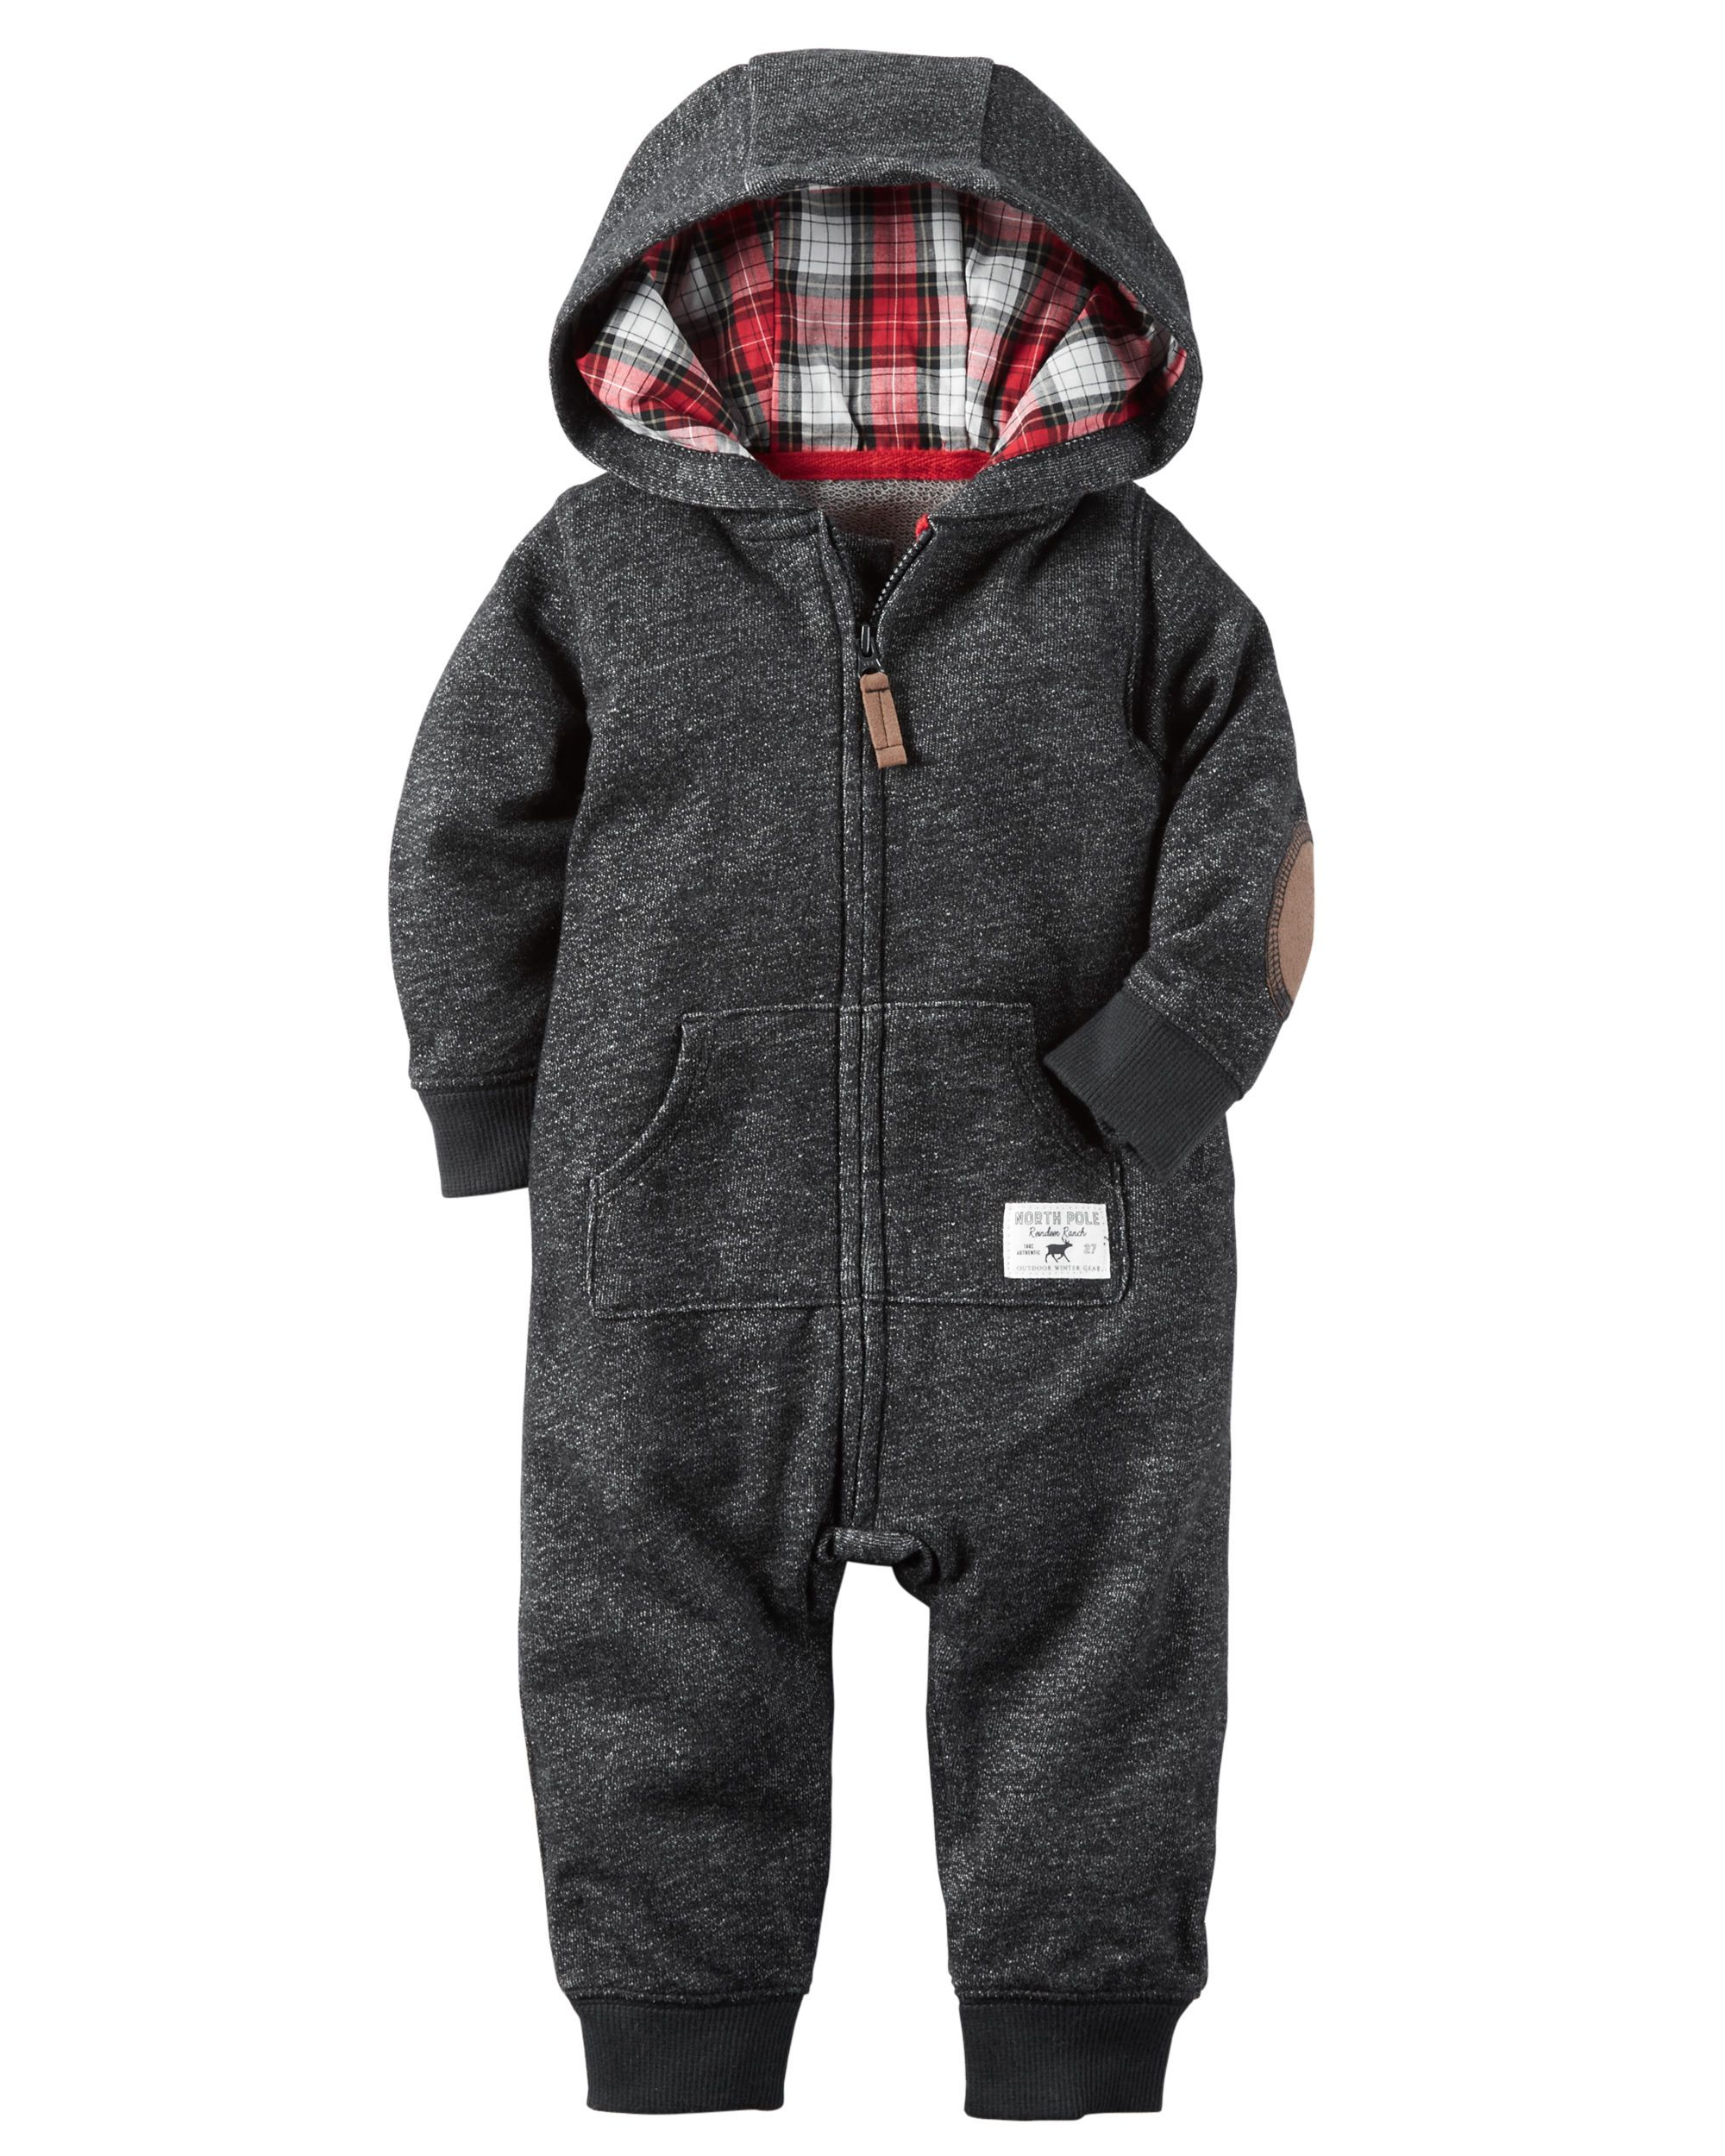 f19bb3f1c5a1 Featuring a cozy plaid-lined hood and easy-on zip-front design